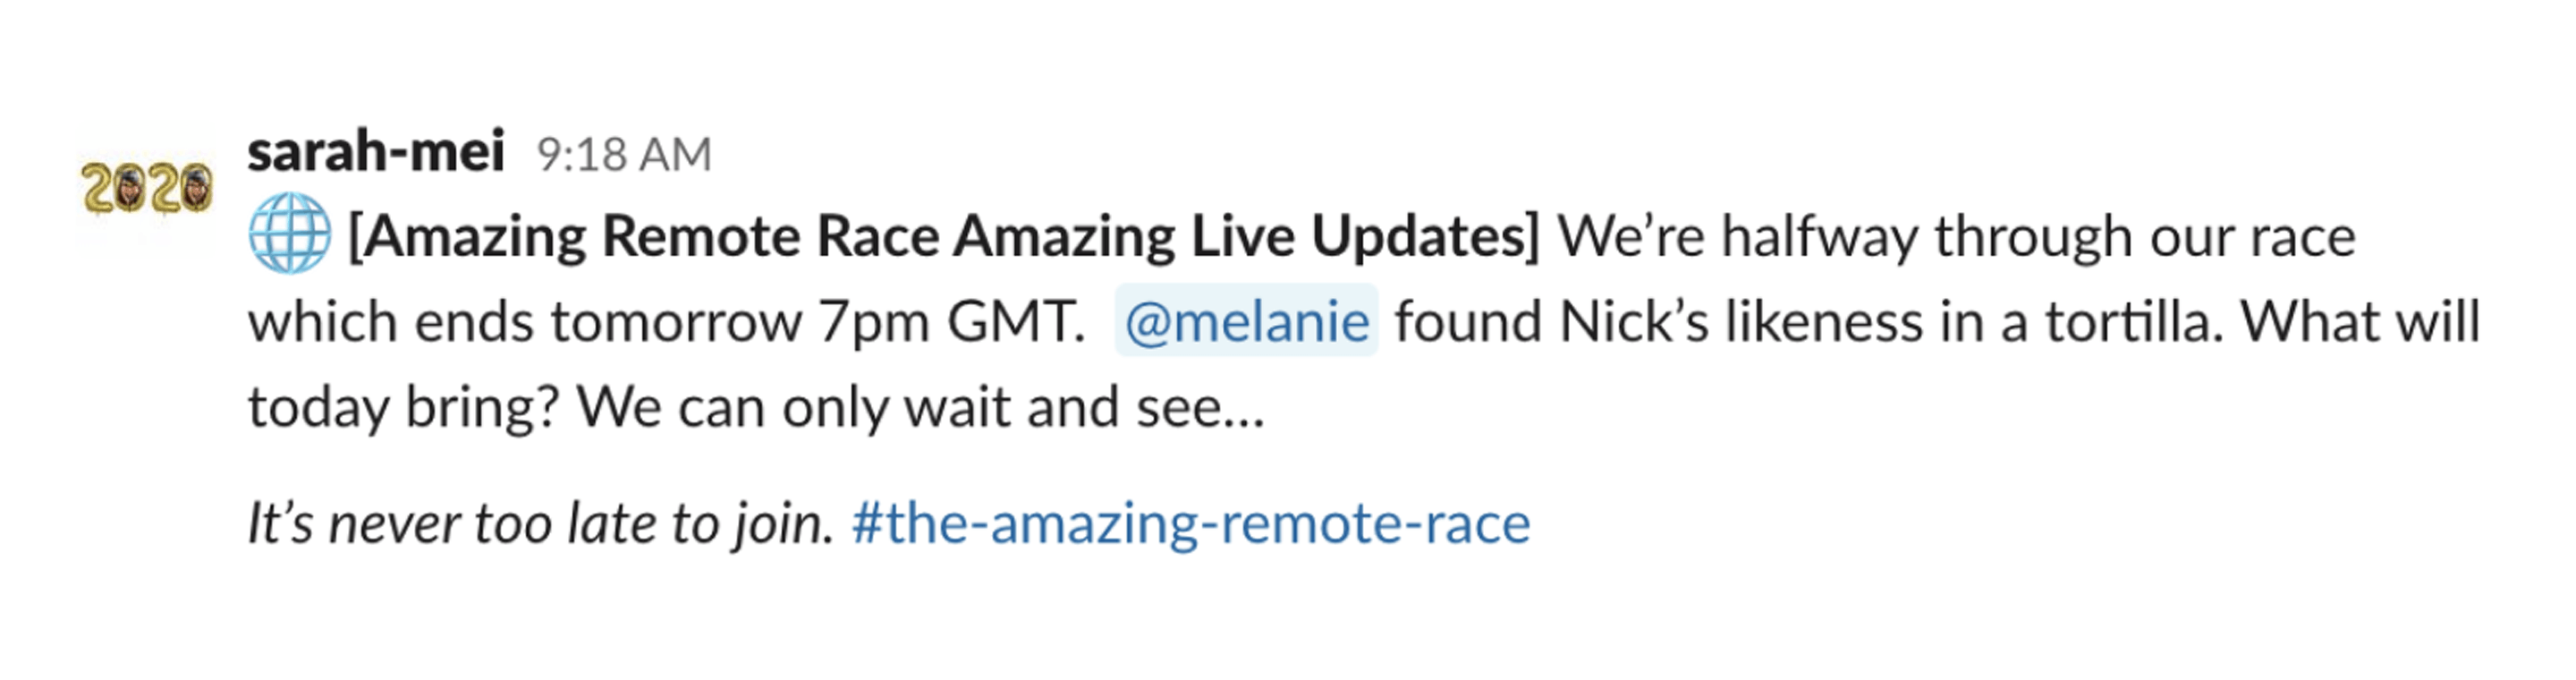 the amazing remote race update